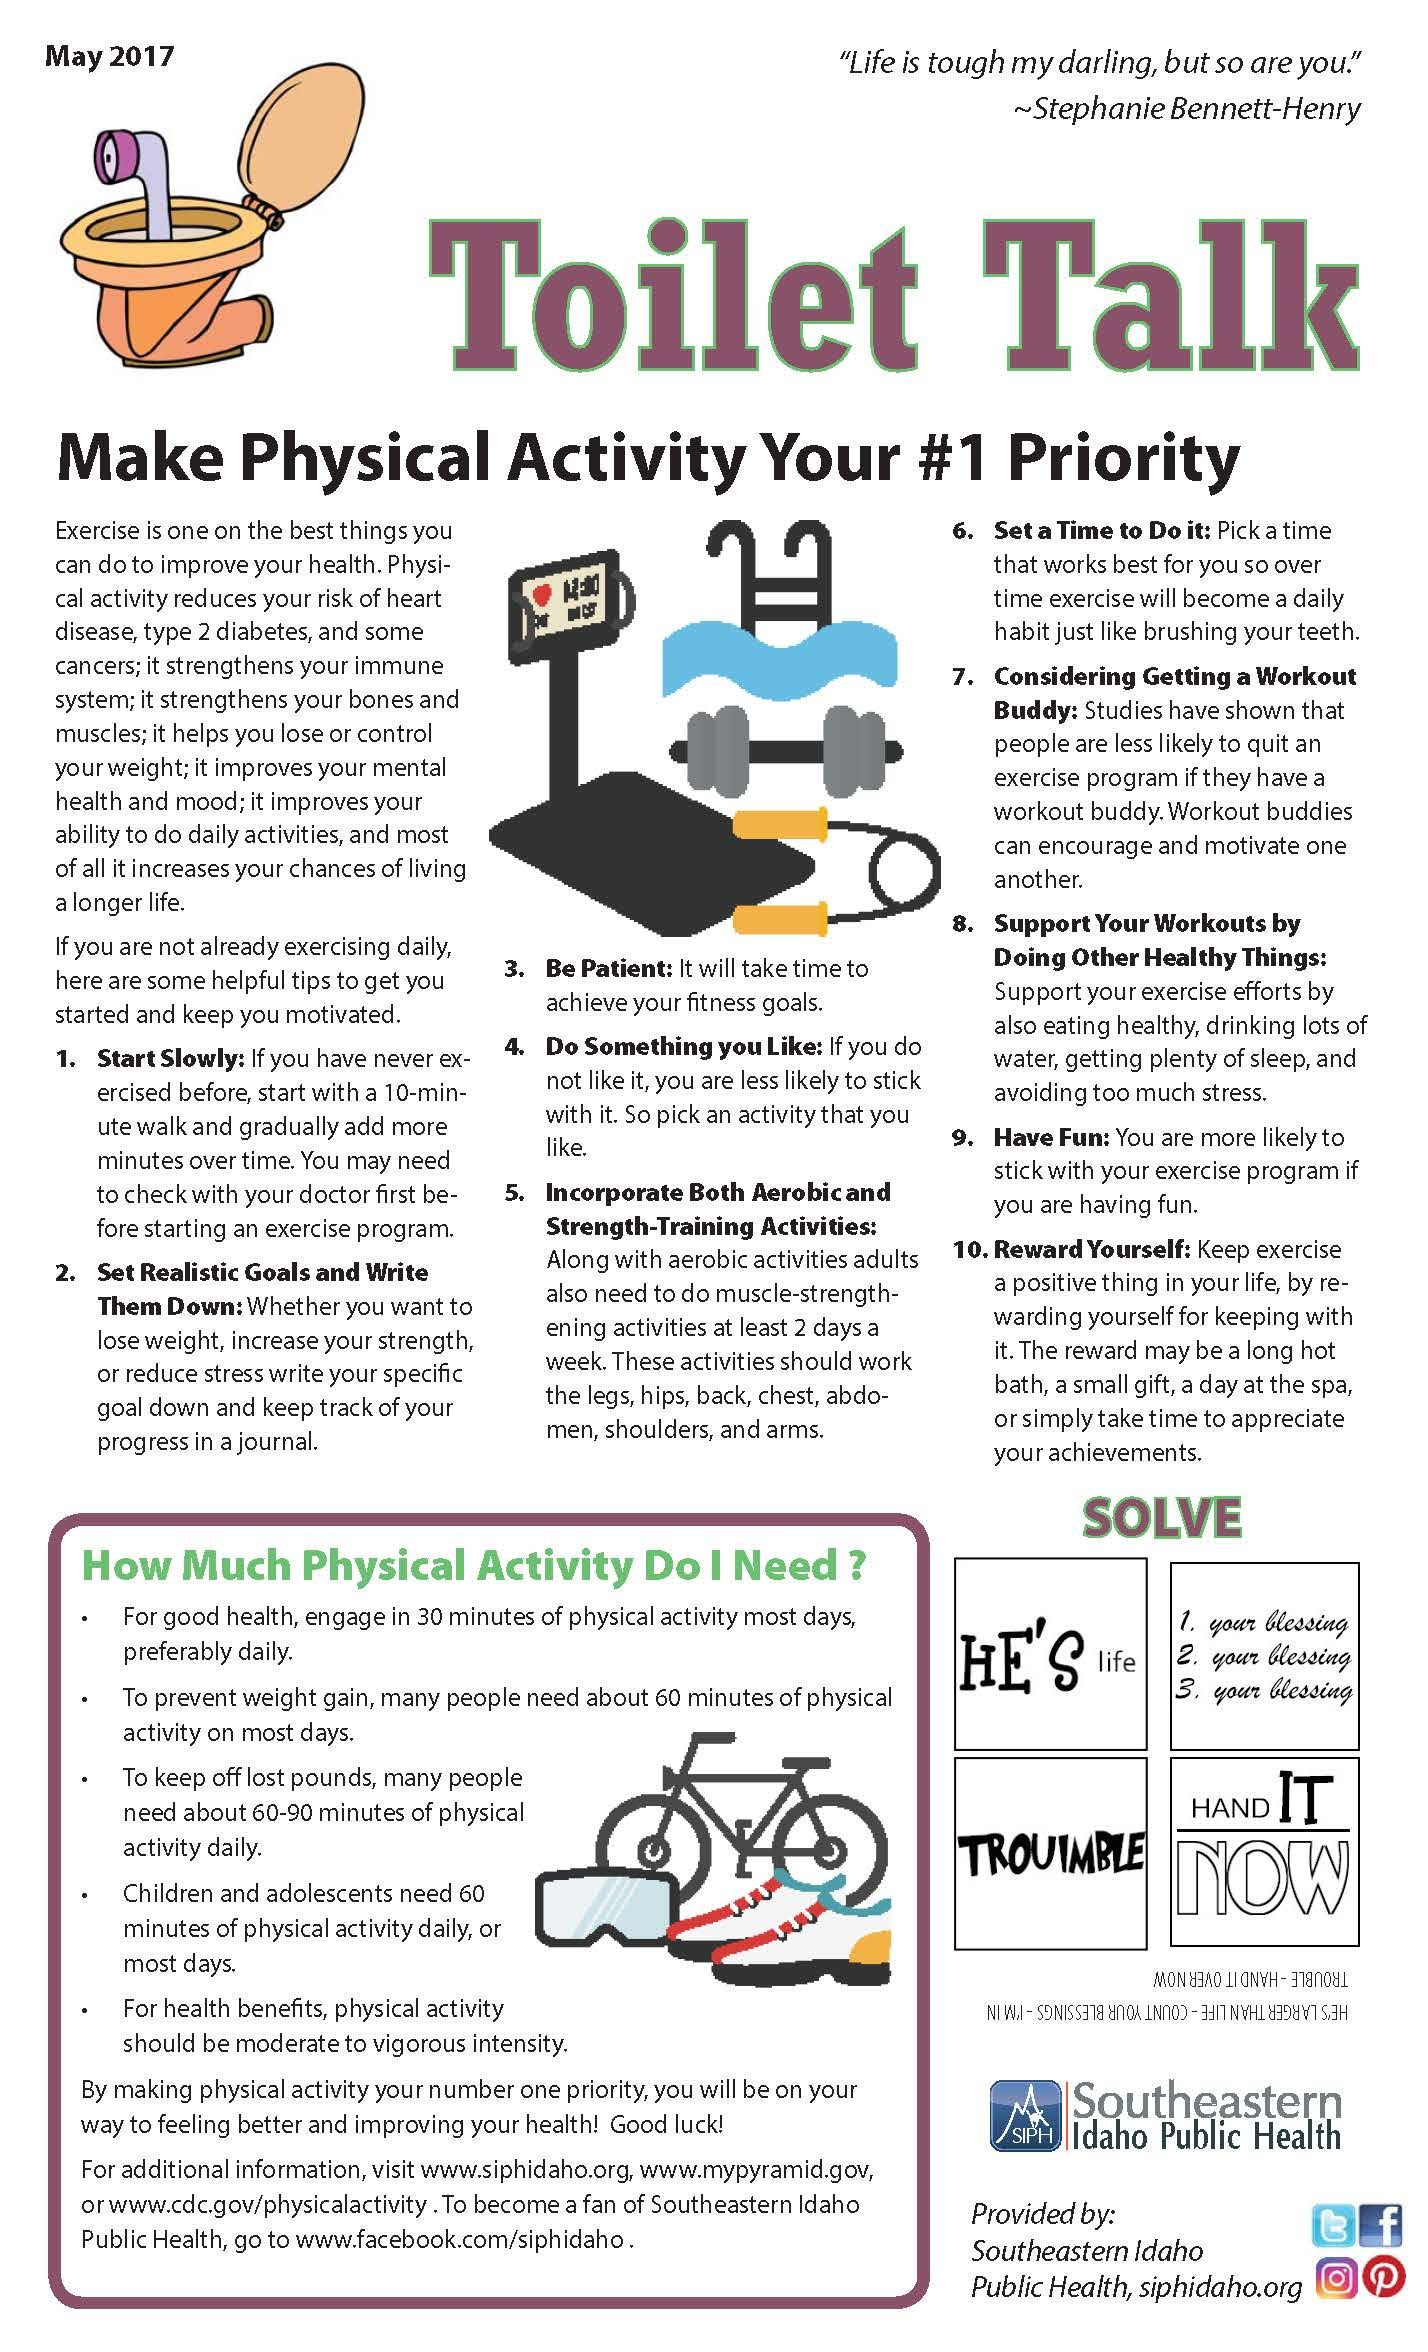 Make Physical Activity Your #1 Priority | Toilet Talk | Pinterest ...